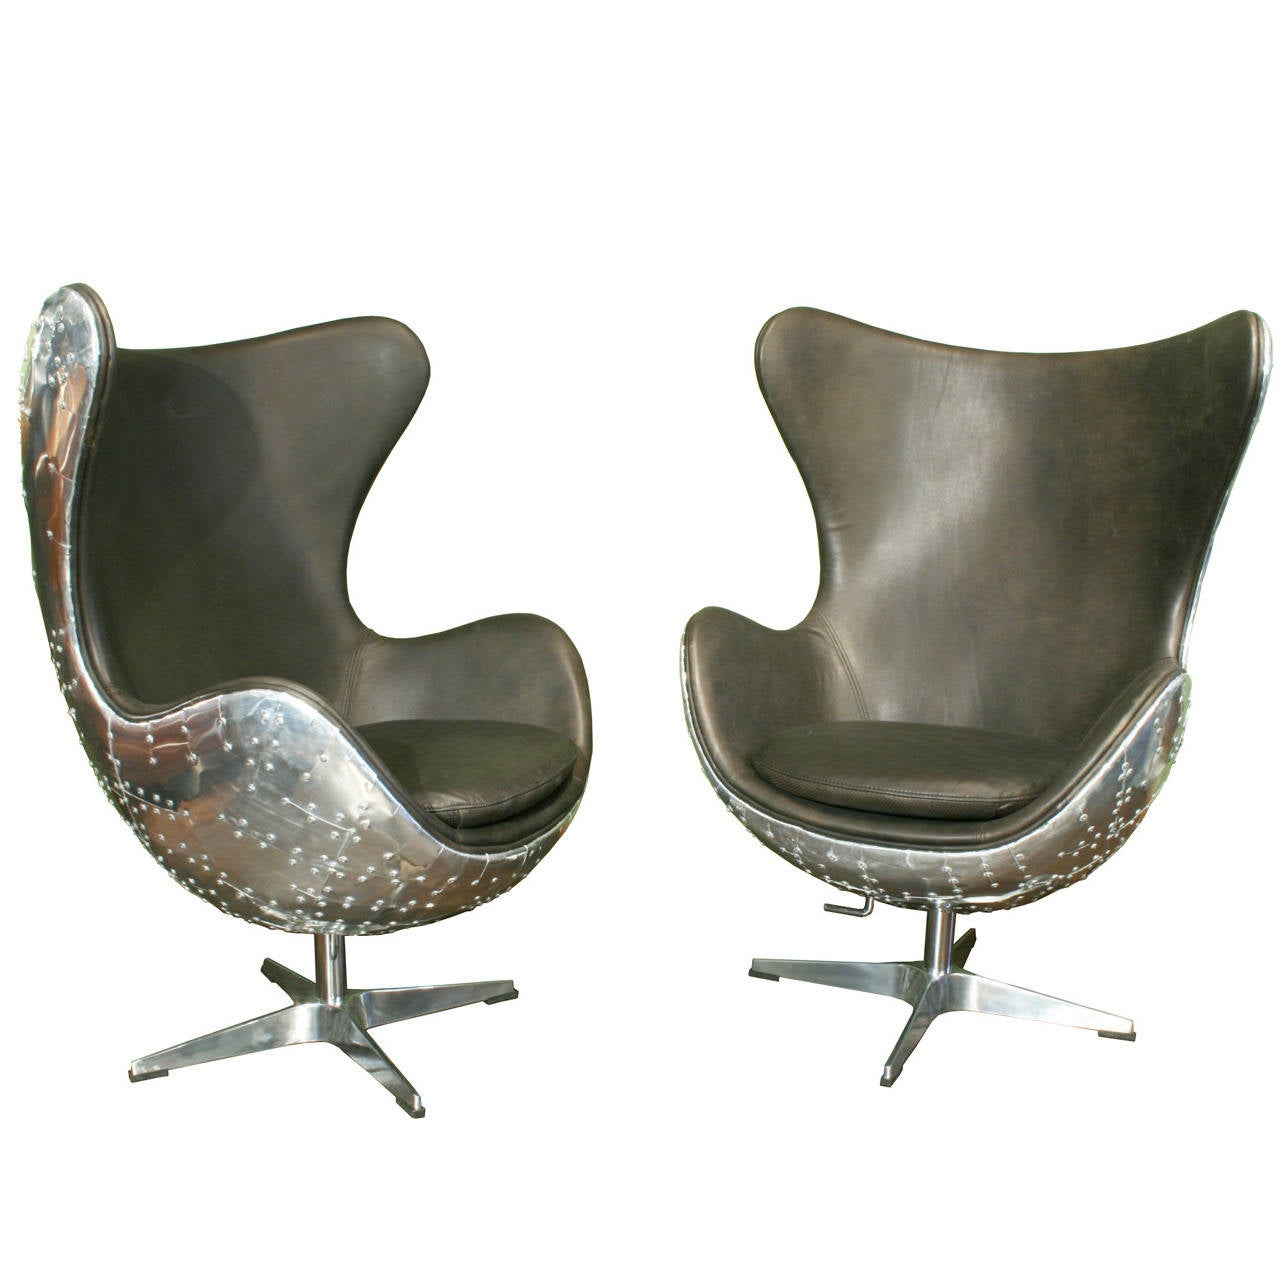 Sofa Ottoman Egg Chairs, Pair Of Aviator Armchairs At 1stdibs